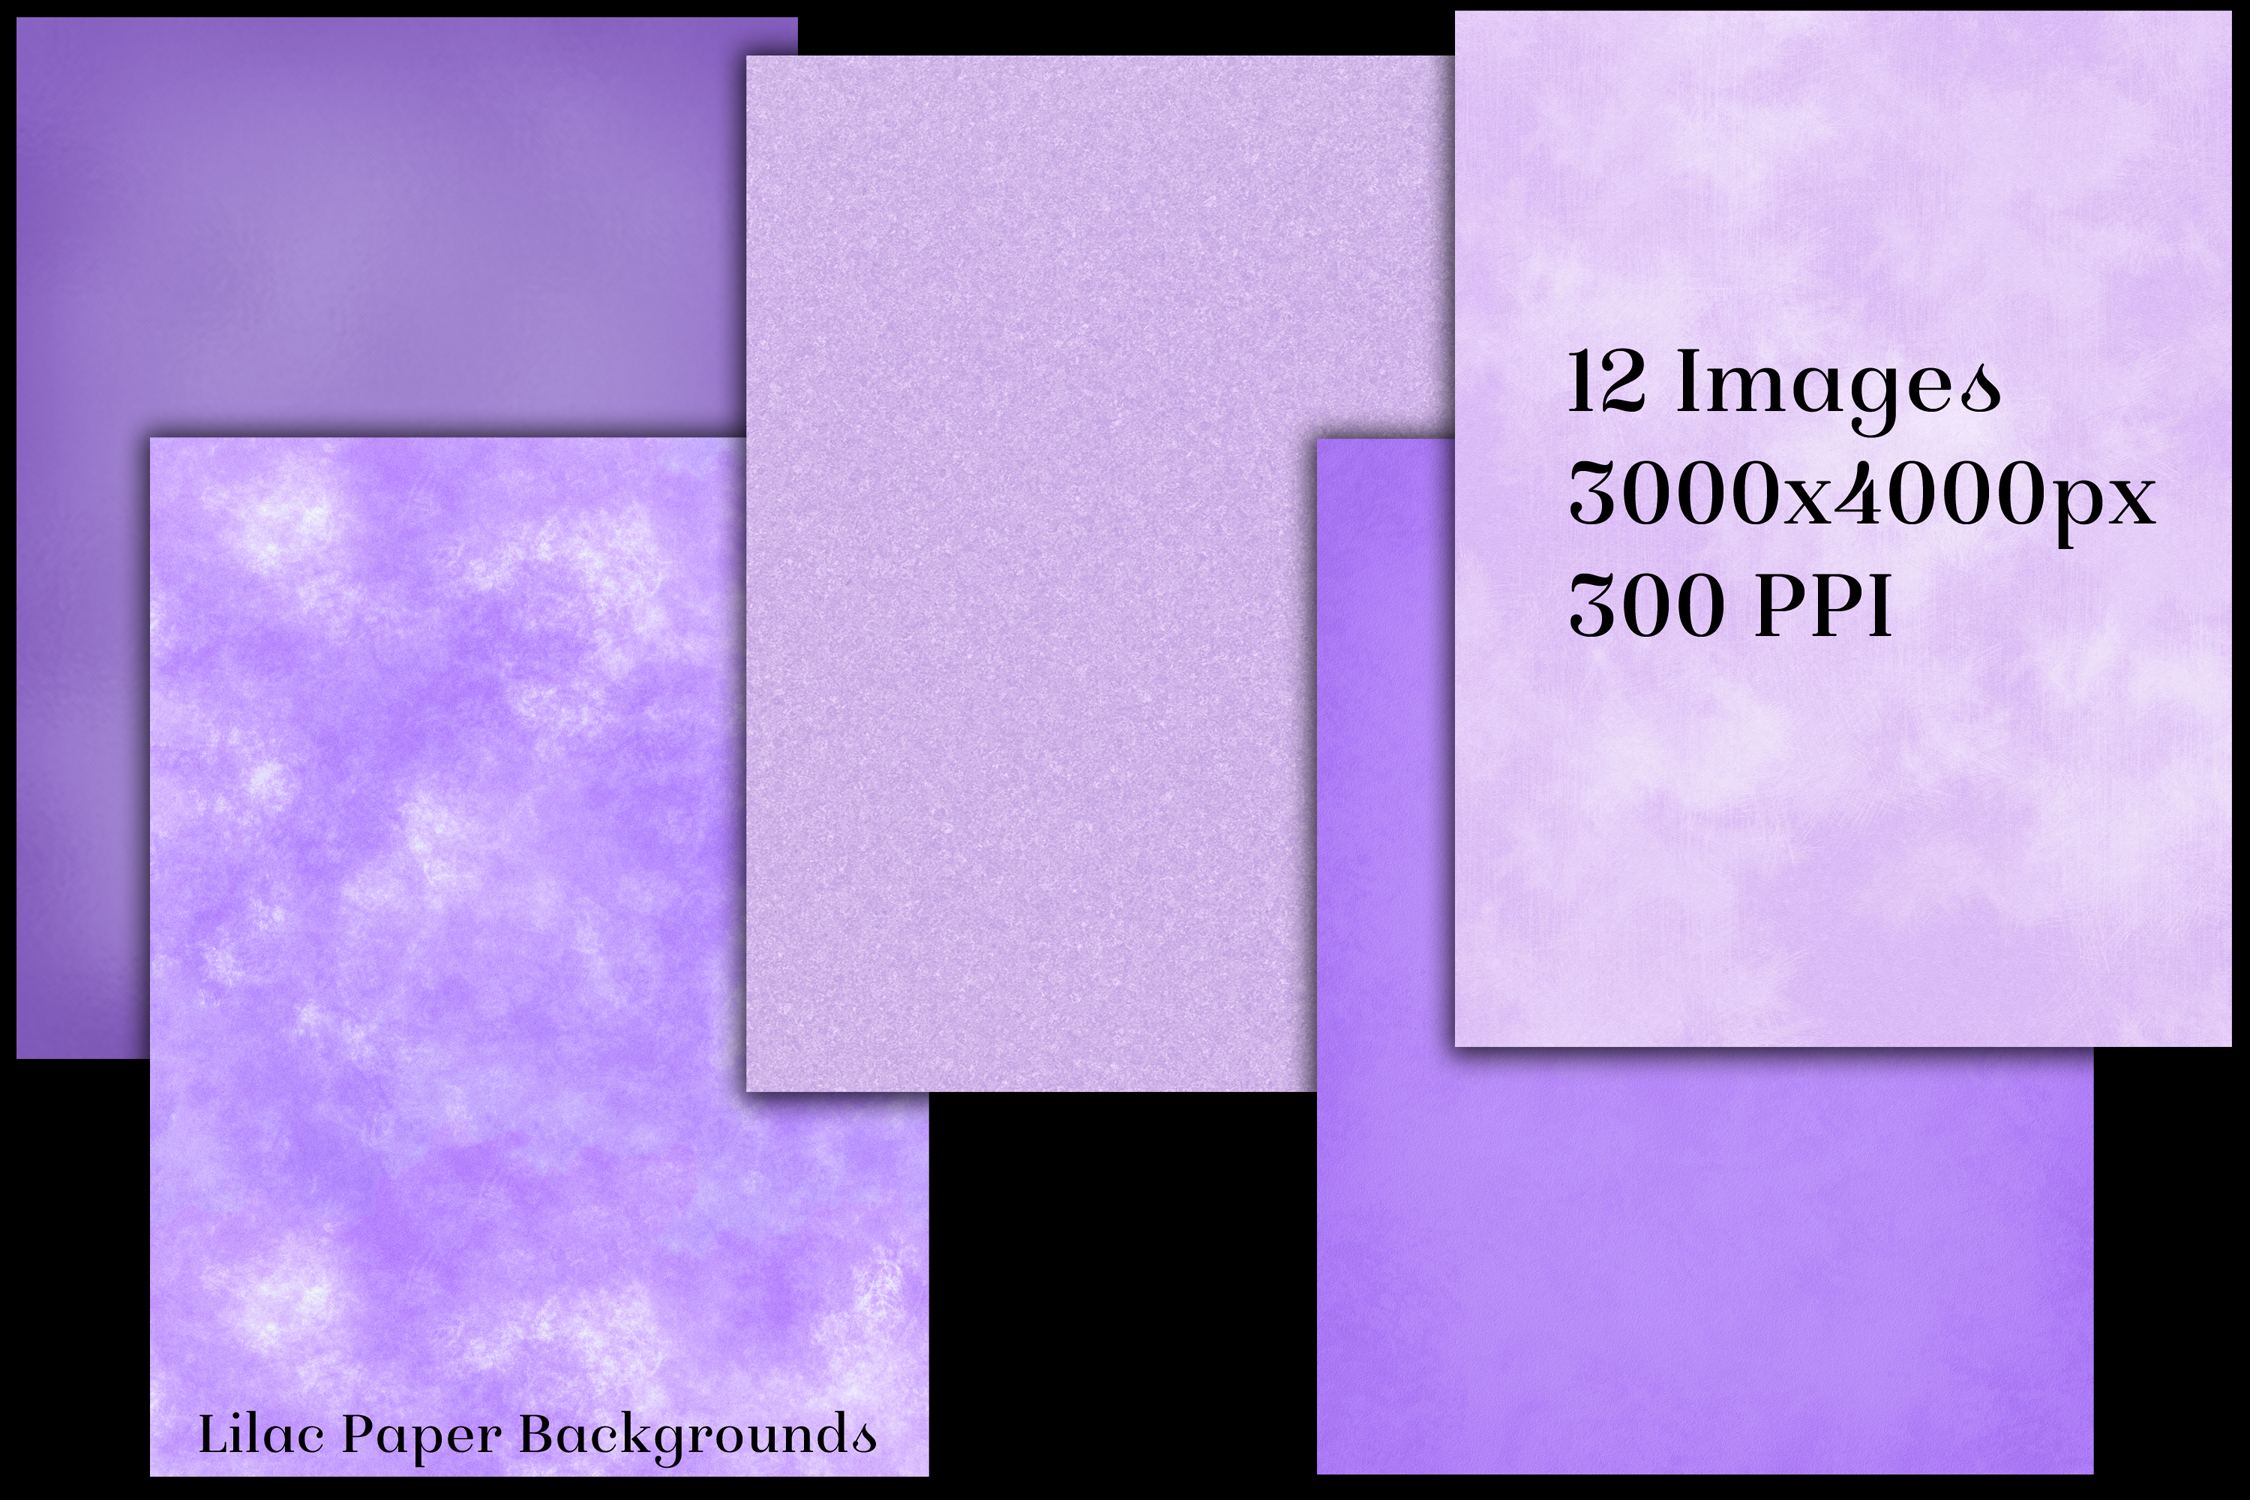 Lilac Paper Backgrounds - 12 Image Textures Set example image 2